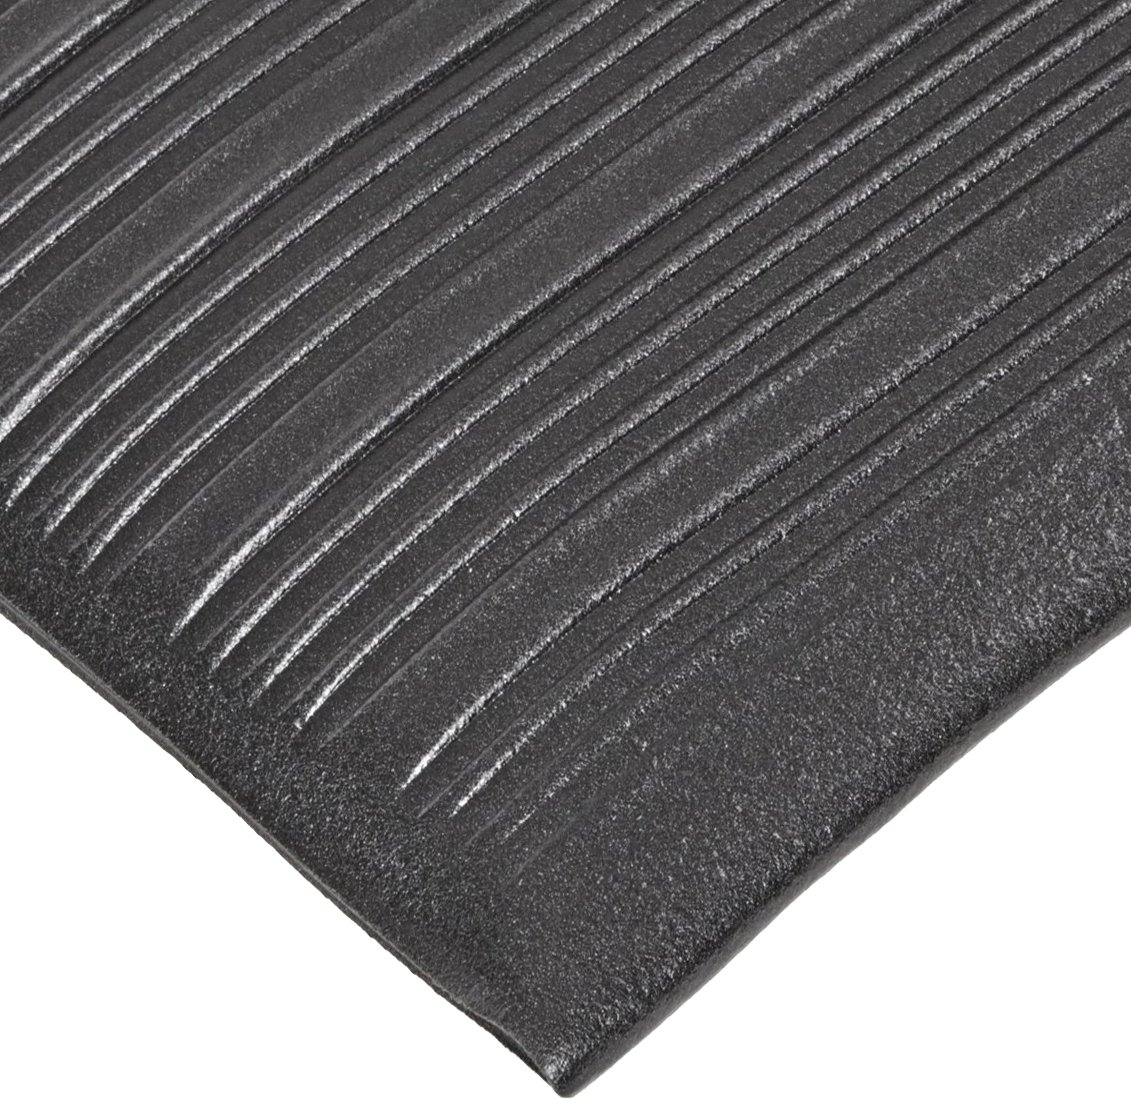 NoTrax 410 PVC Airug Safety/Anti-Fatigue Floor Mat, for Dry Areas, 3' Width x 12' Length x 3/8'' Thickness, Black